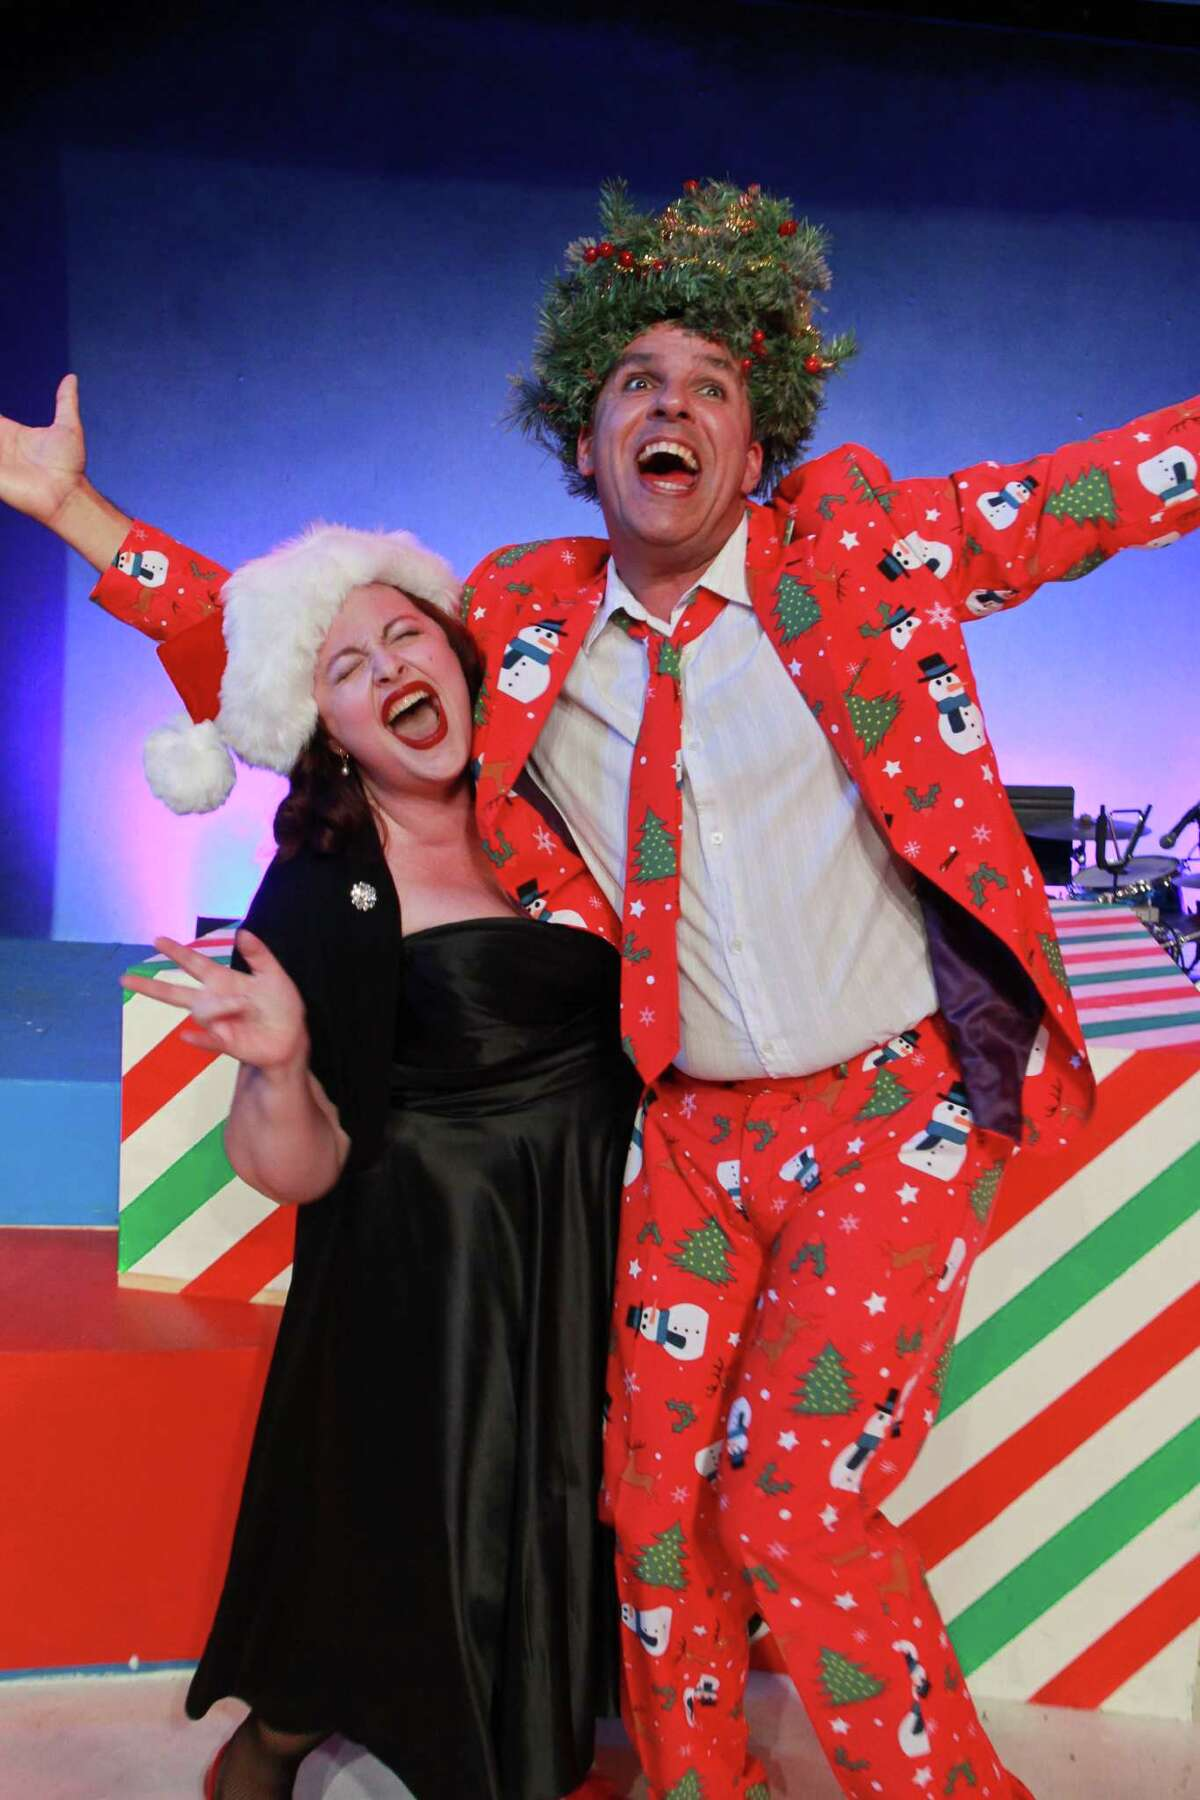 """(For the Chronicle/Gary Fountain, July 9, 2014) Tamarie Cooper with Greg Dean as Christmas, in this scene from Catastrophic Theatre's """"A very Tamarie Christmas,"""" a show spoofing Christmas and other holidays, well-known and virtually unknown."""